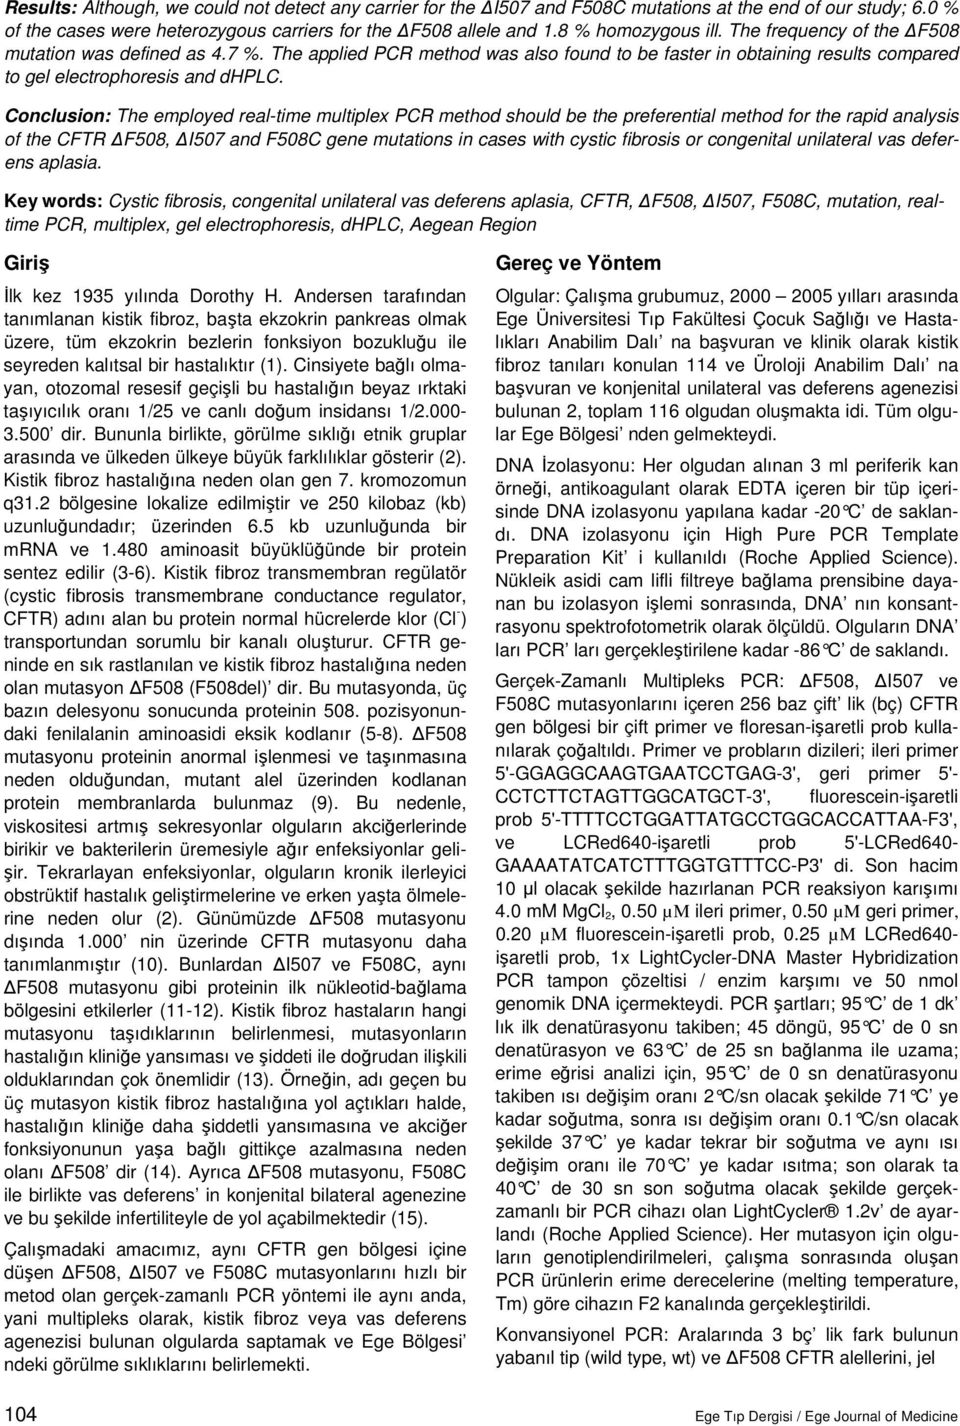 Conclusion: The employed real-time multiplex PCR method should be the preferential method for the rapid analysis of the CFTR F508, I507 and F508C gene mutations in cases with cystic fibrosis or